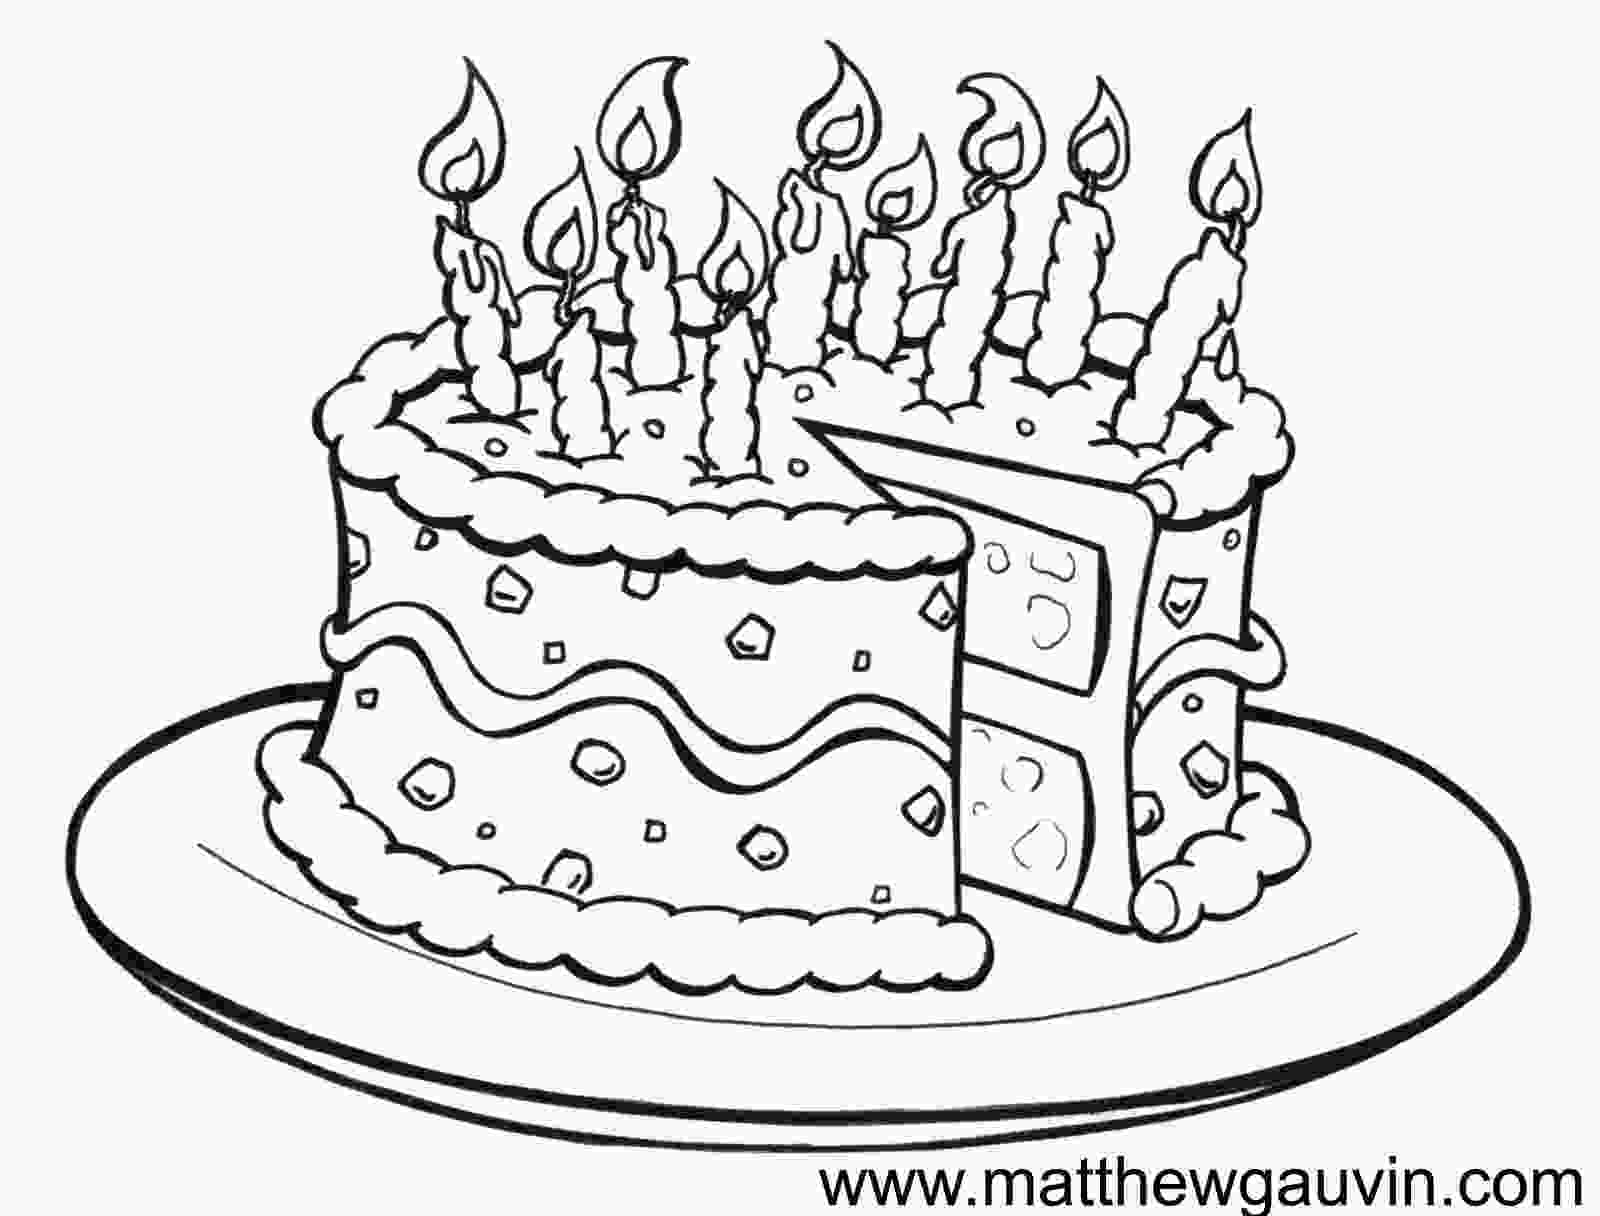 draw cake birthday drawings mg childrens book illustrations